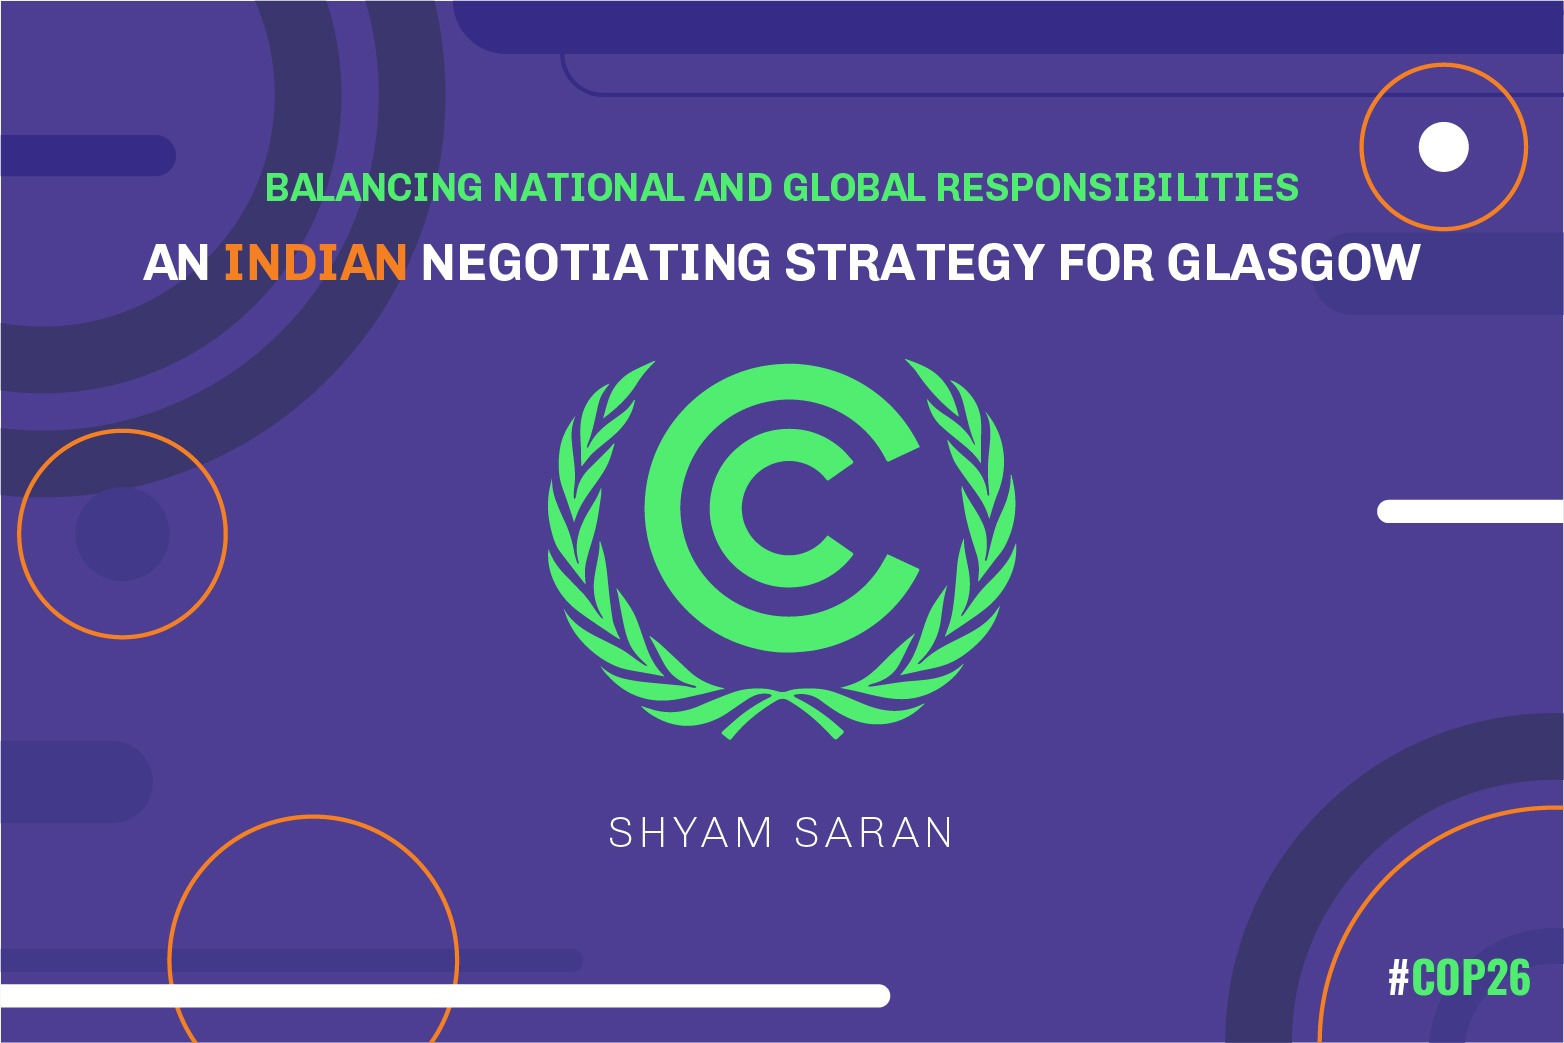 Balancing National and Global Responsibilities: An Indian Negotiating Strategy for Glasgow